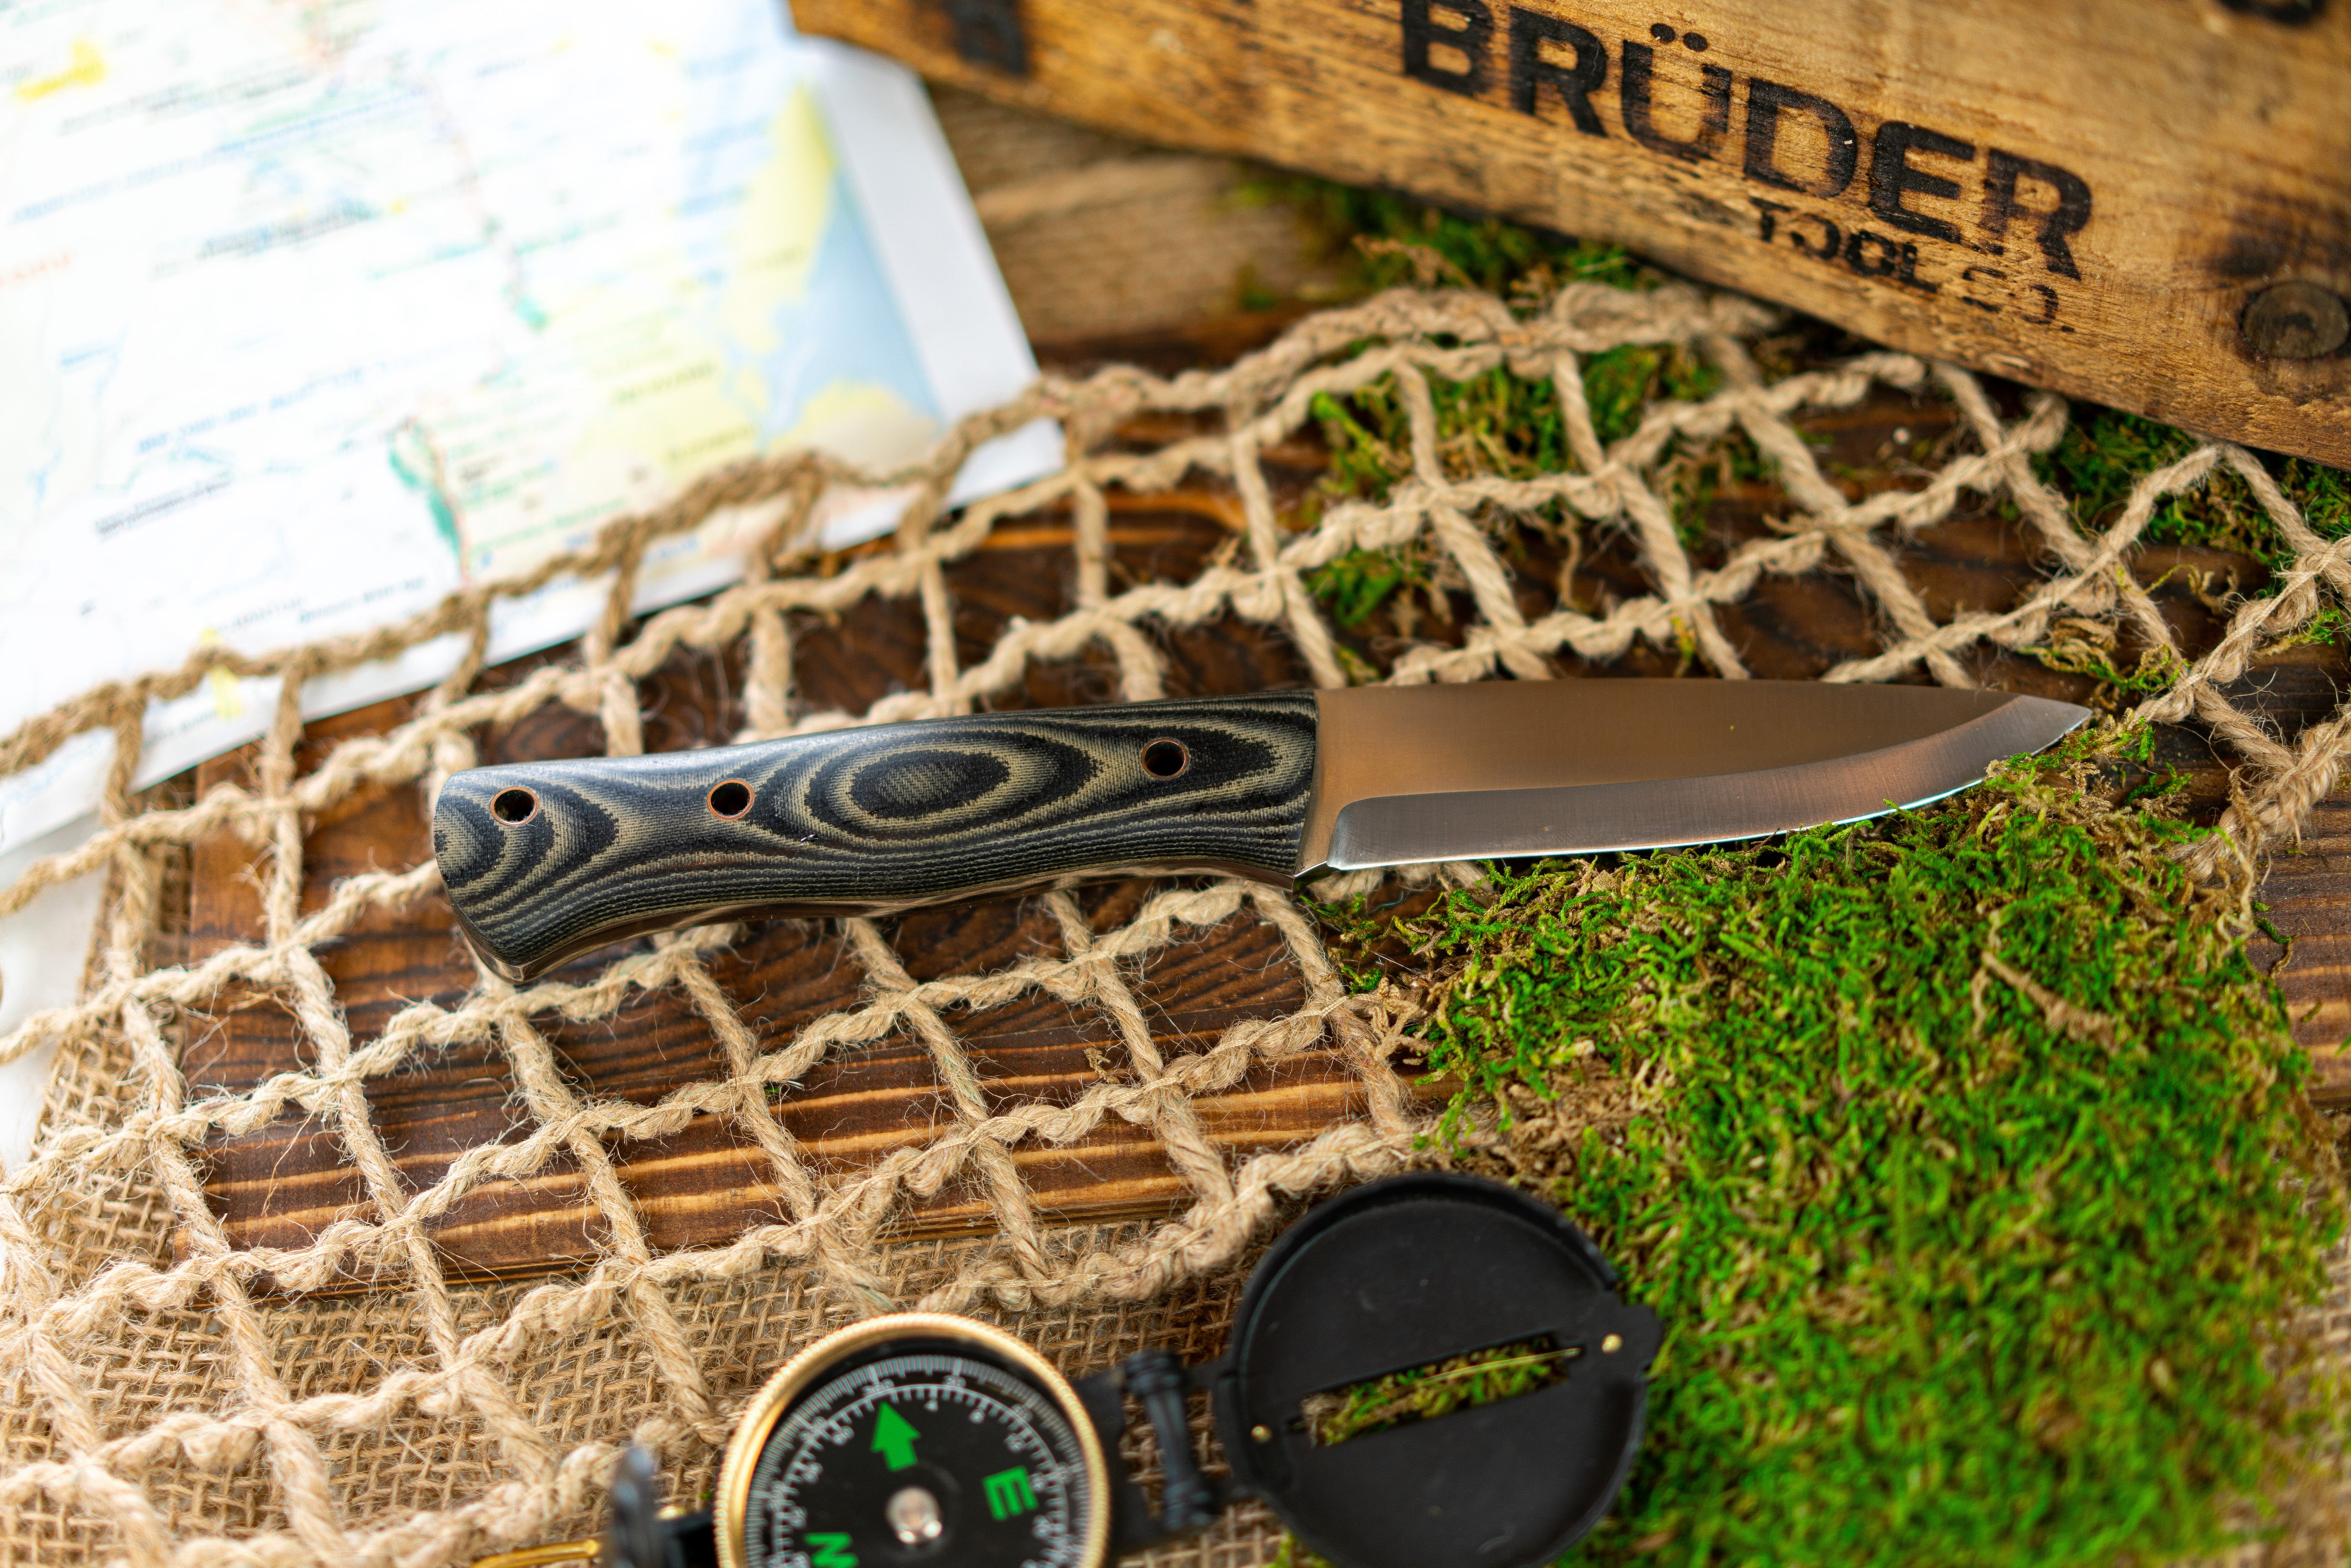 Brüder Alger Bushcraft Knife - Black / Charcoal Grey